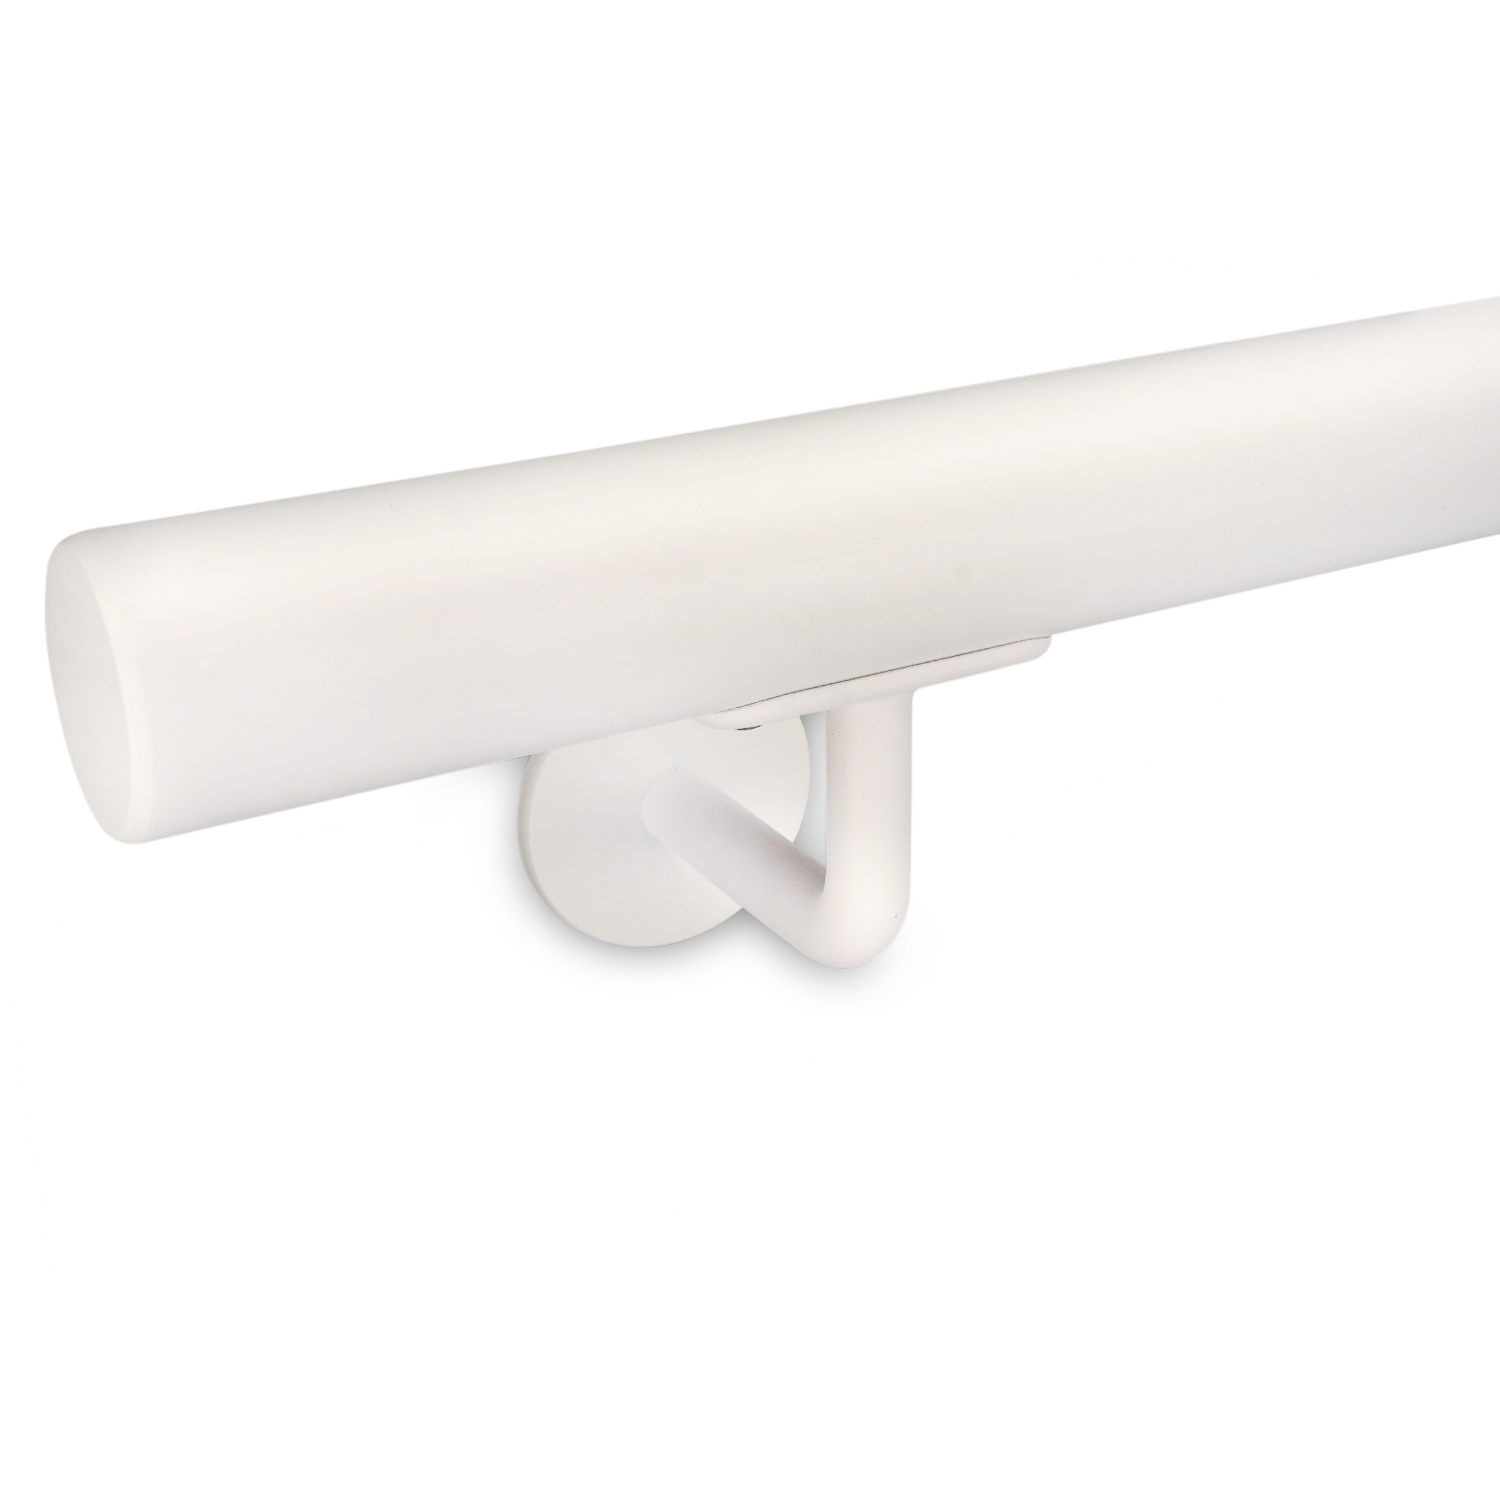 Witte trapleuning gecoat rond incl. dragers TYPE 3 - fijnstructuur poedercoating RAL 9010 mat wit